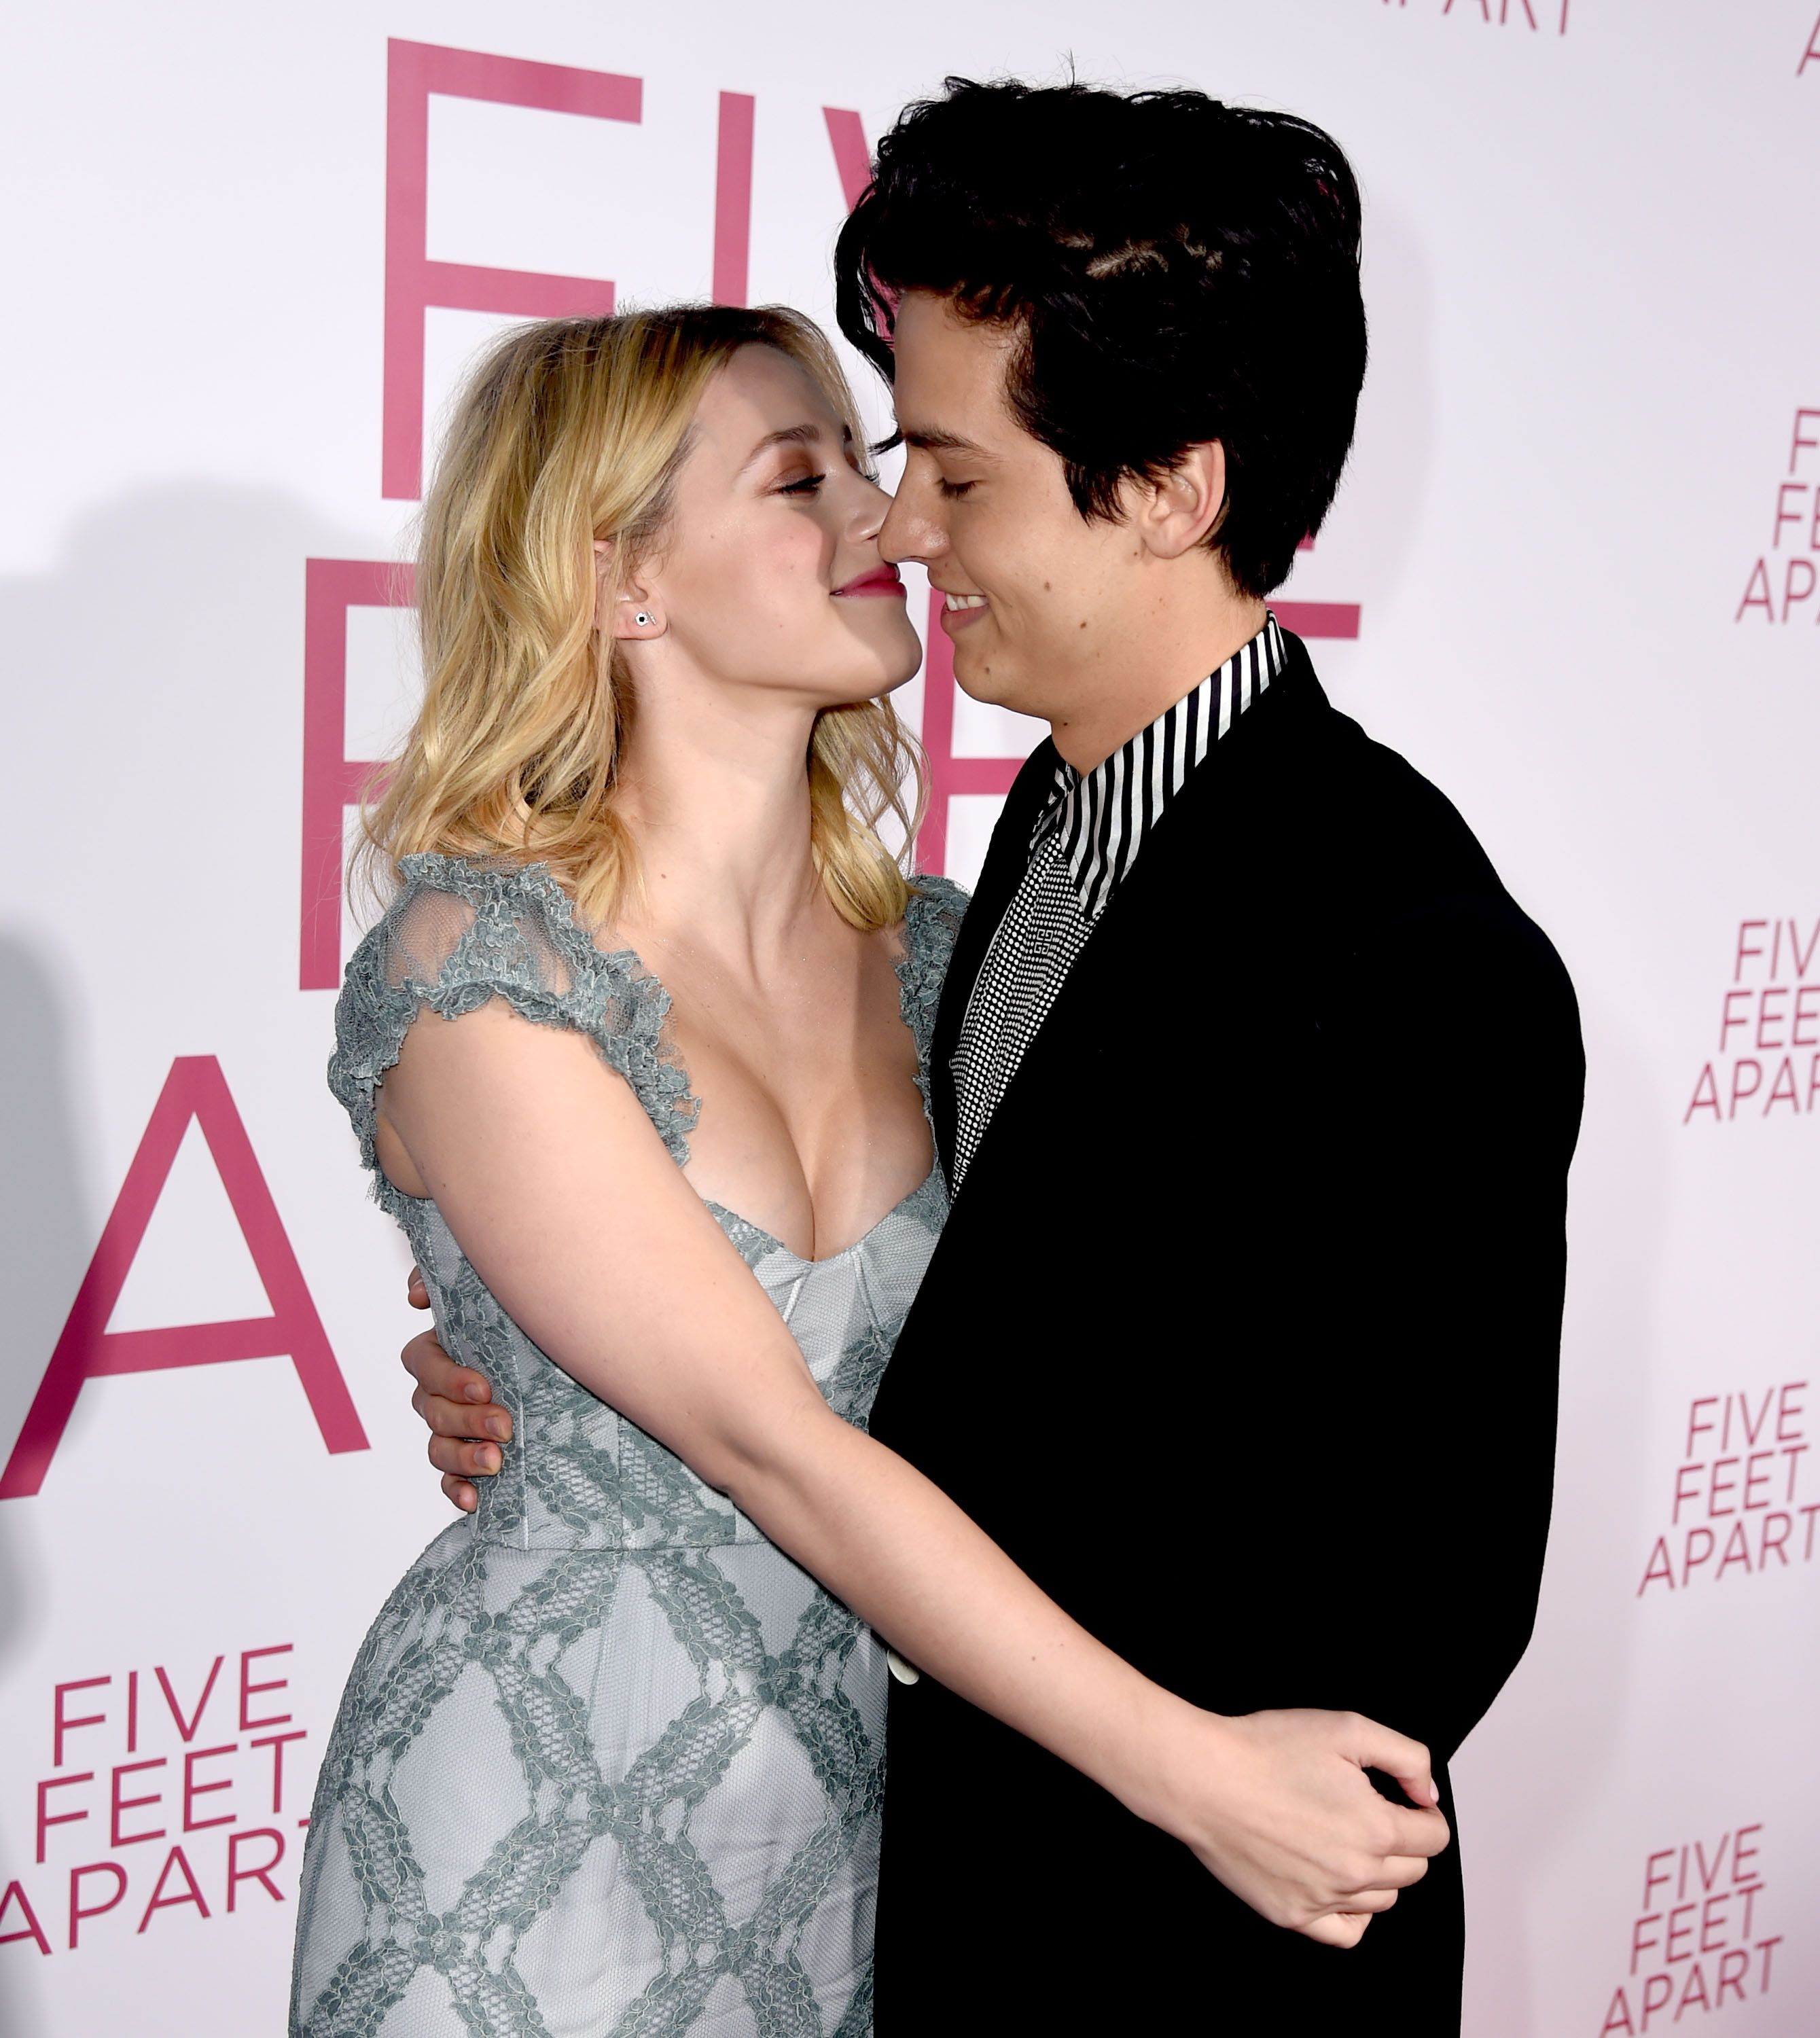 Cole Sprouse Shared 4 Photos of Him and Lili Reinhart Making Out for Her Birthday